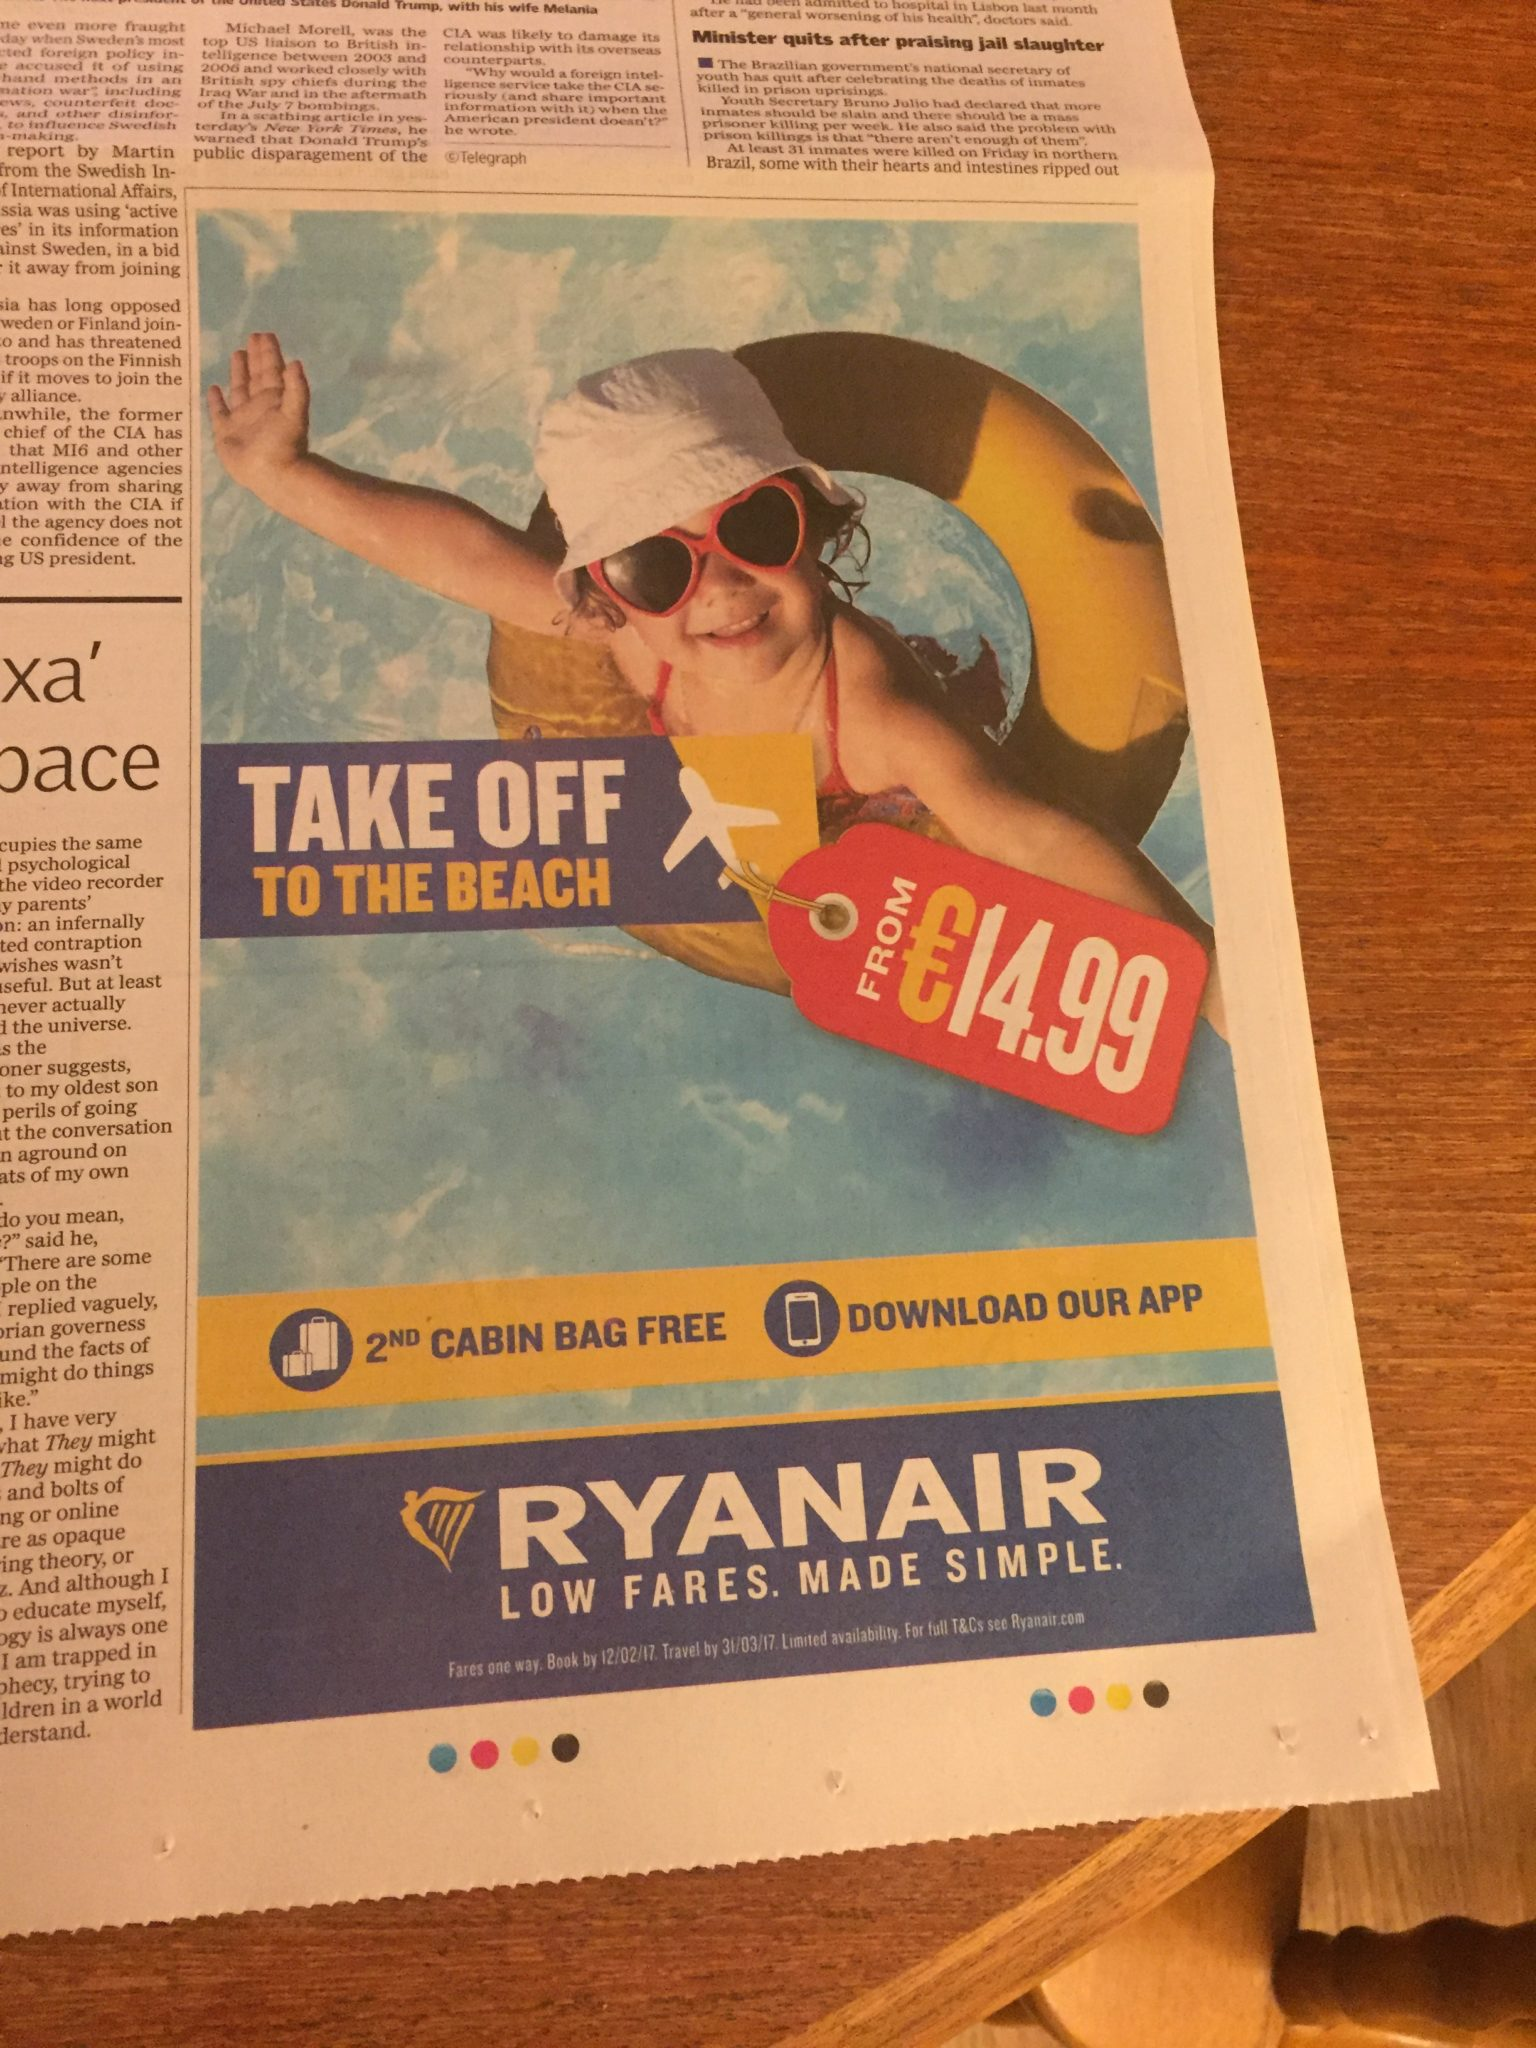 Ryanair – take off to the beach from €14.99